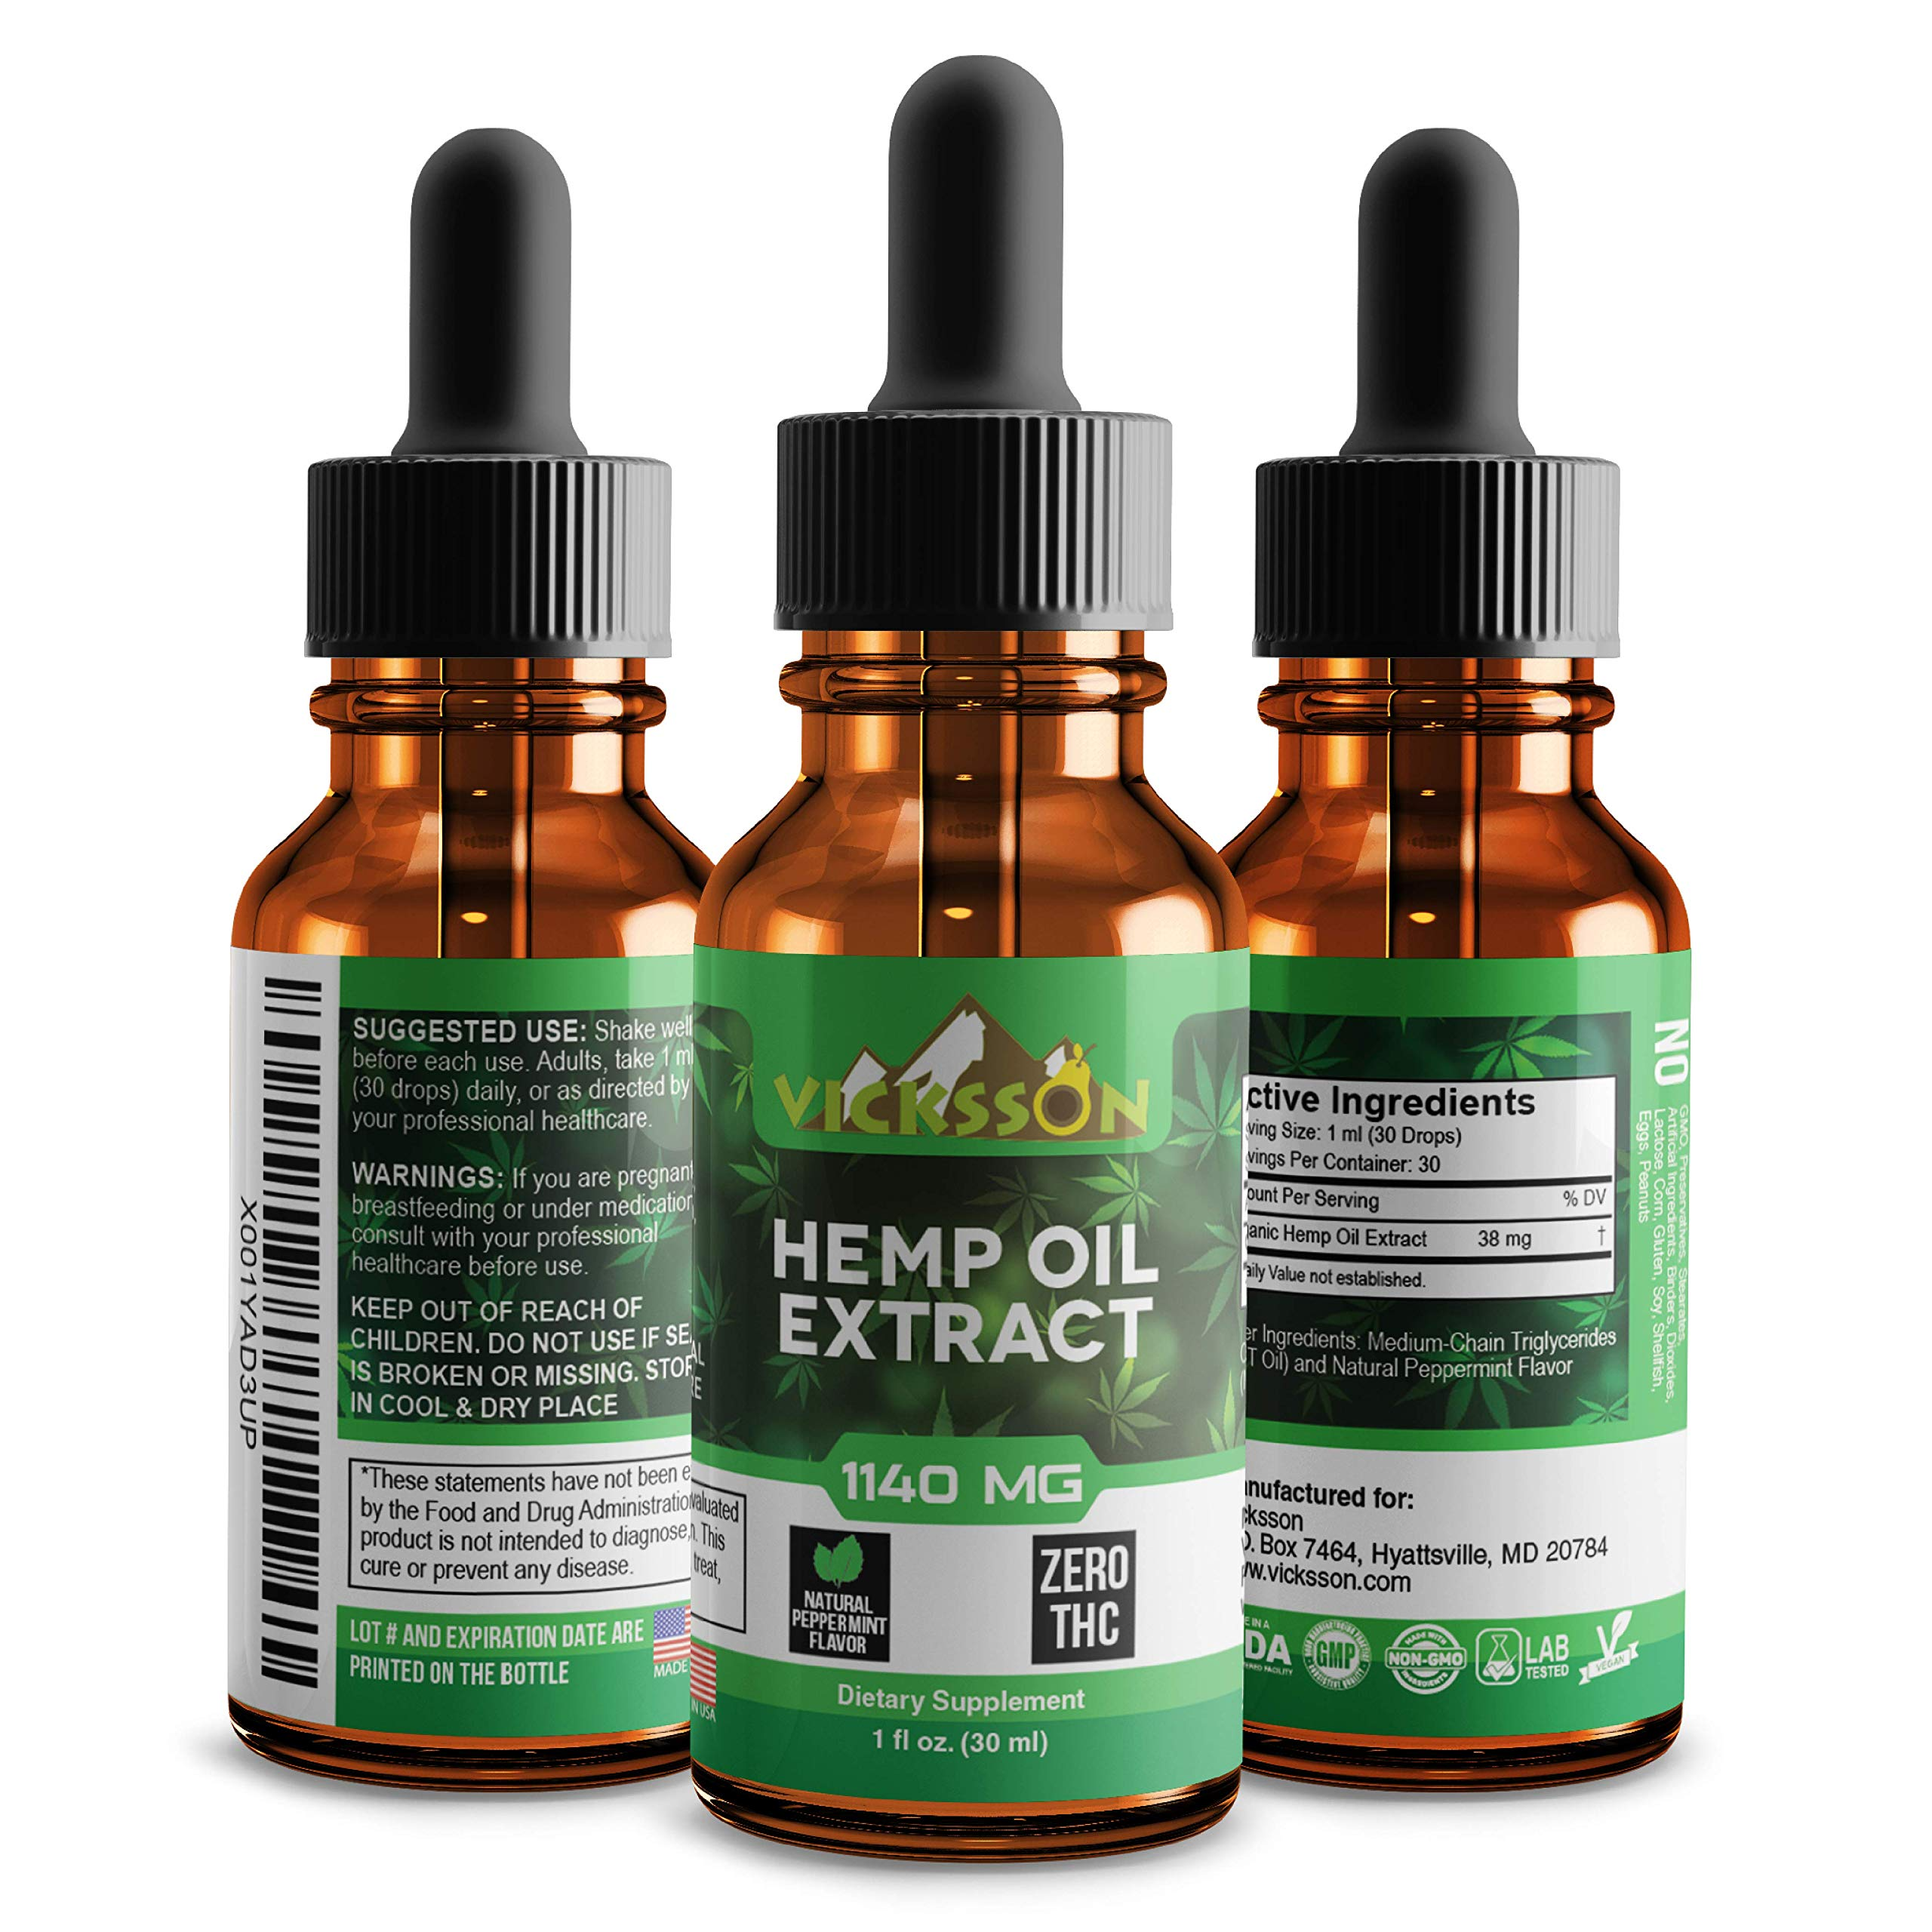 Vicksson Organic Hemp Oil Drops